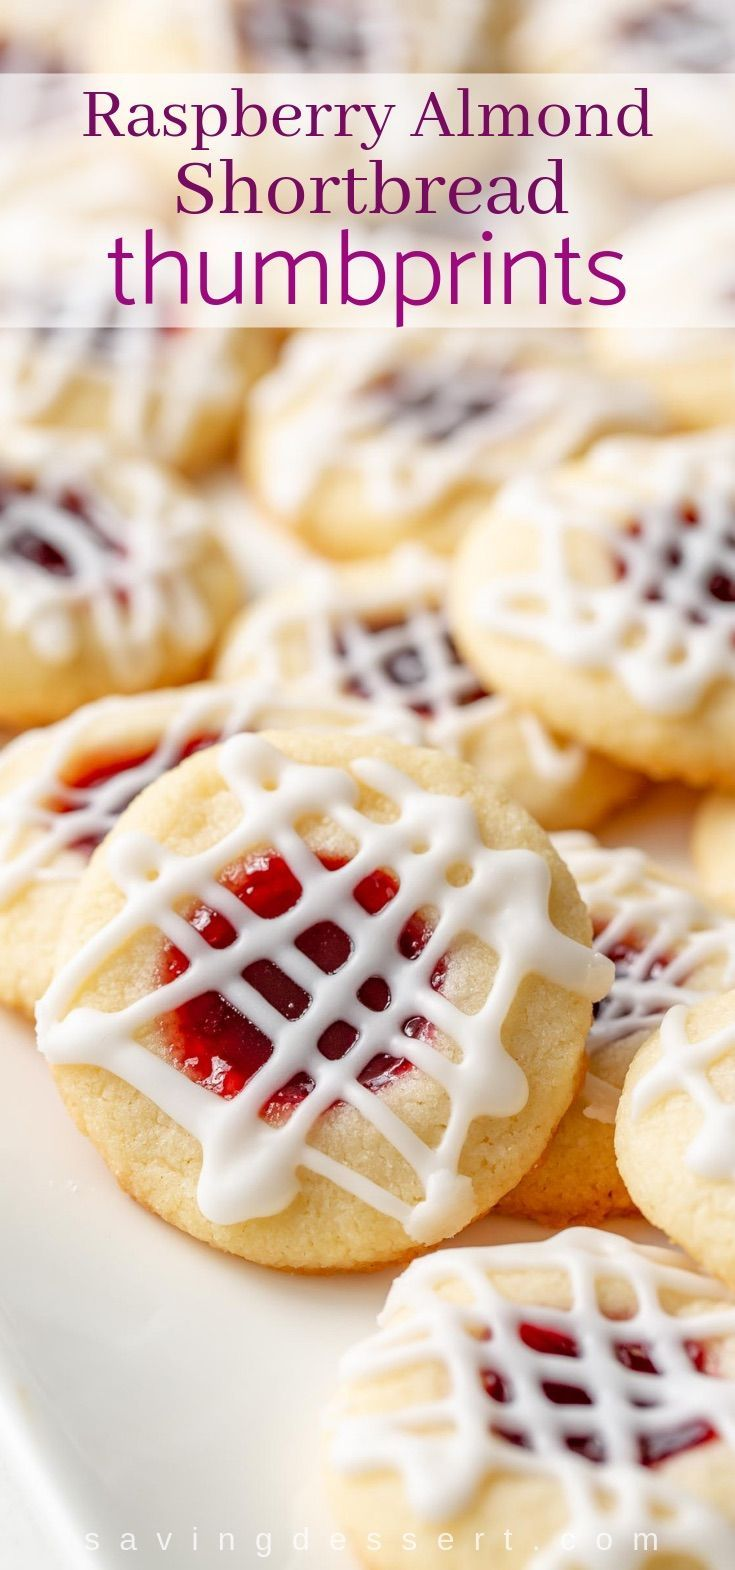 Raspberry Almond Shortbread Thumbprint Cookies - Saving Room for Dessert